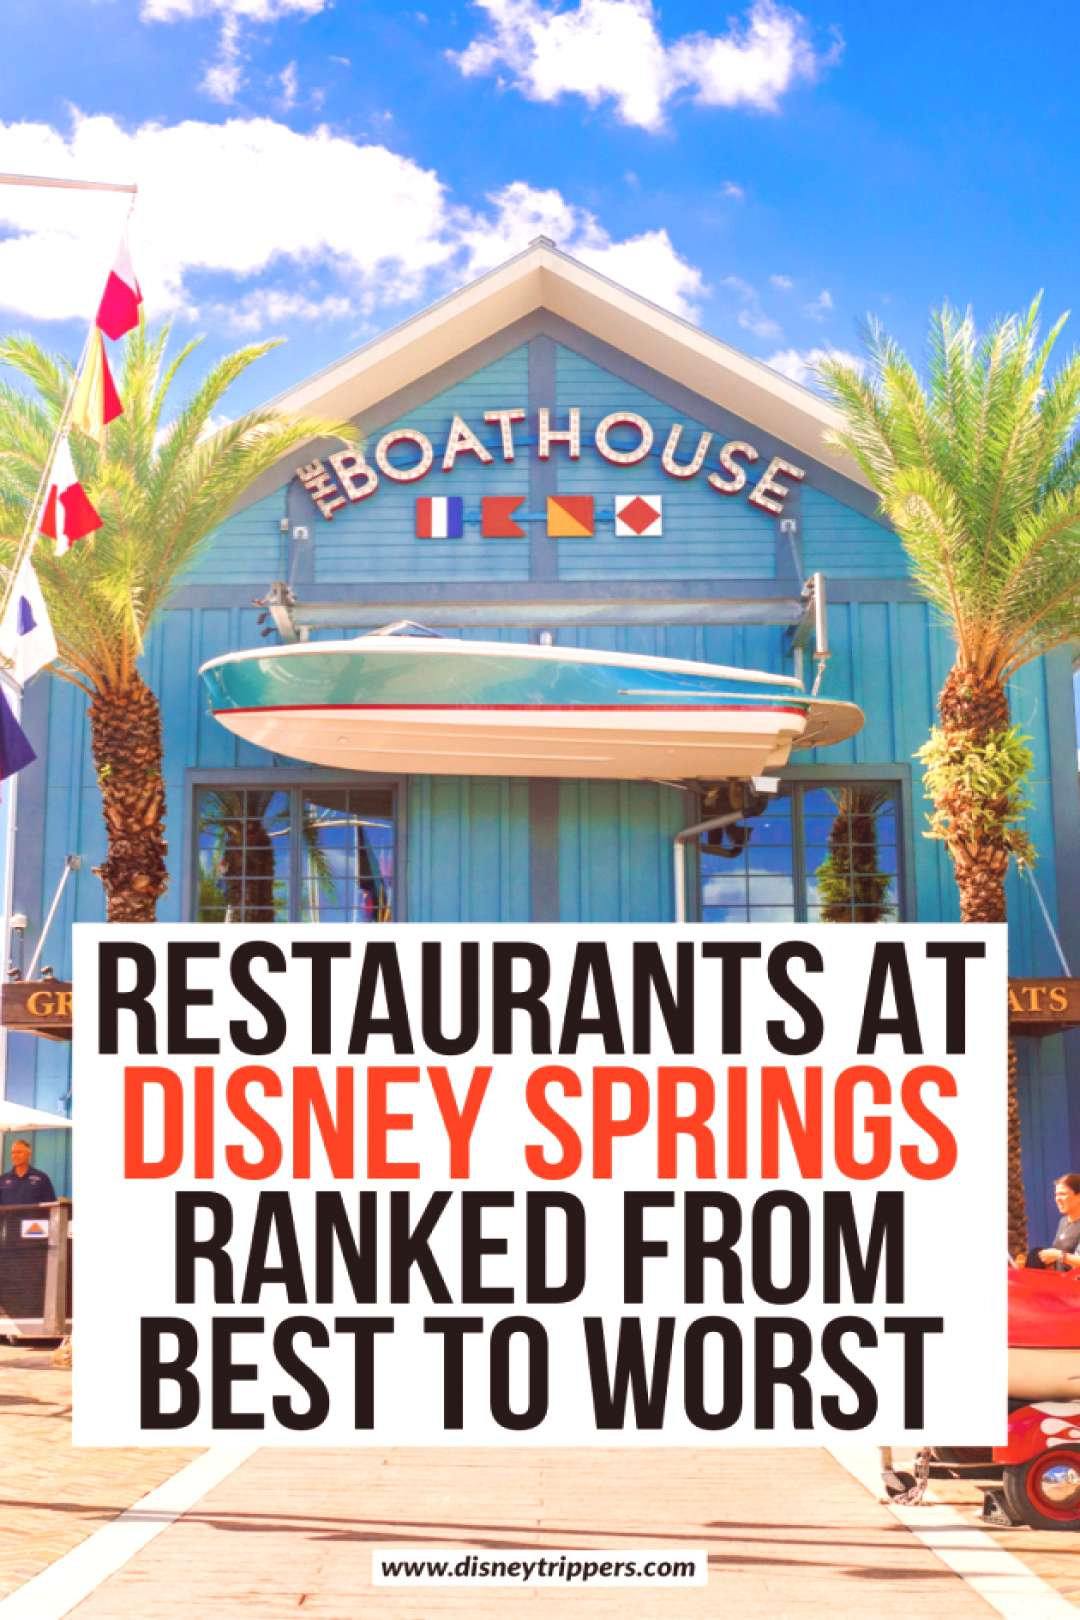 Restaurants At Disney Springs Ranked From Best to Worst | 12 Best (And Worst!) D...,  Restaurants A